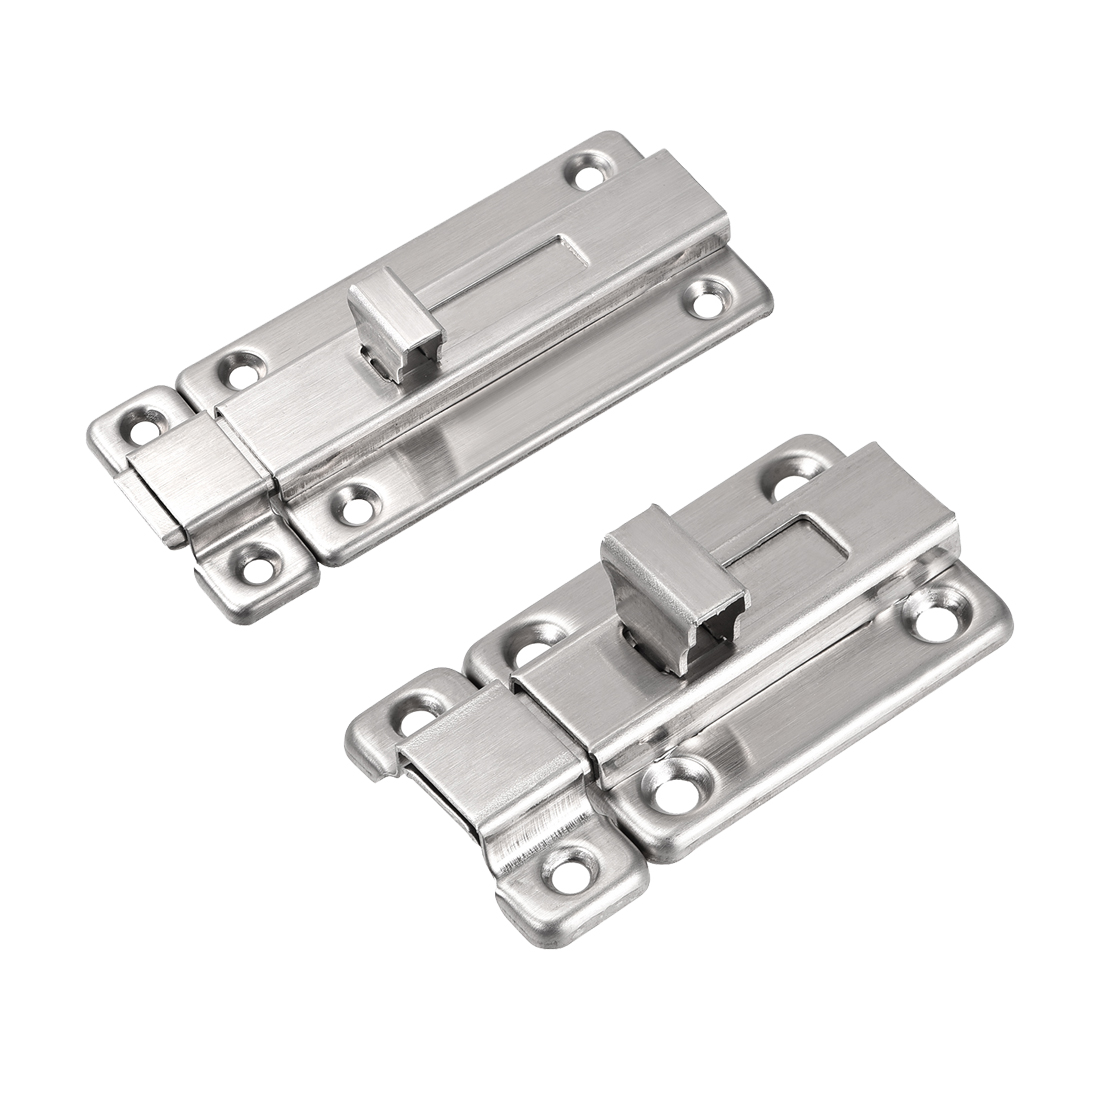 Silver Tone Door Lock Latch Slide Barrel Bolt Clasp Boat 316 Stainless Steel